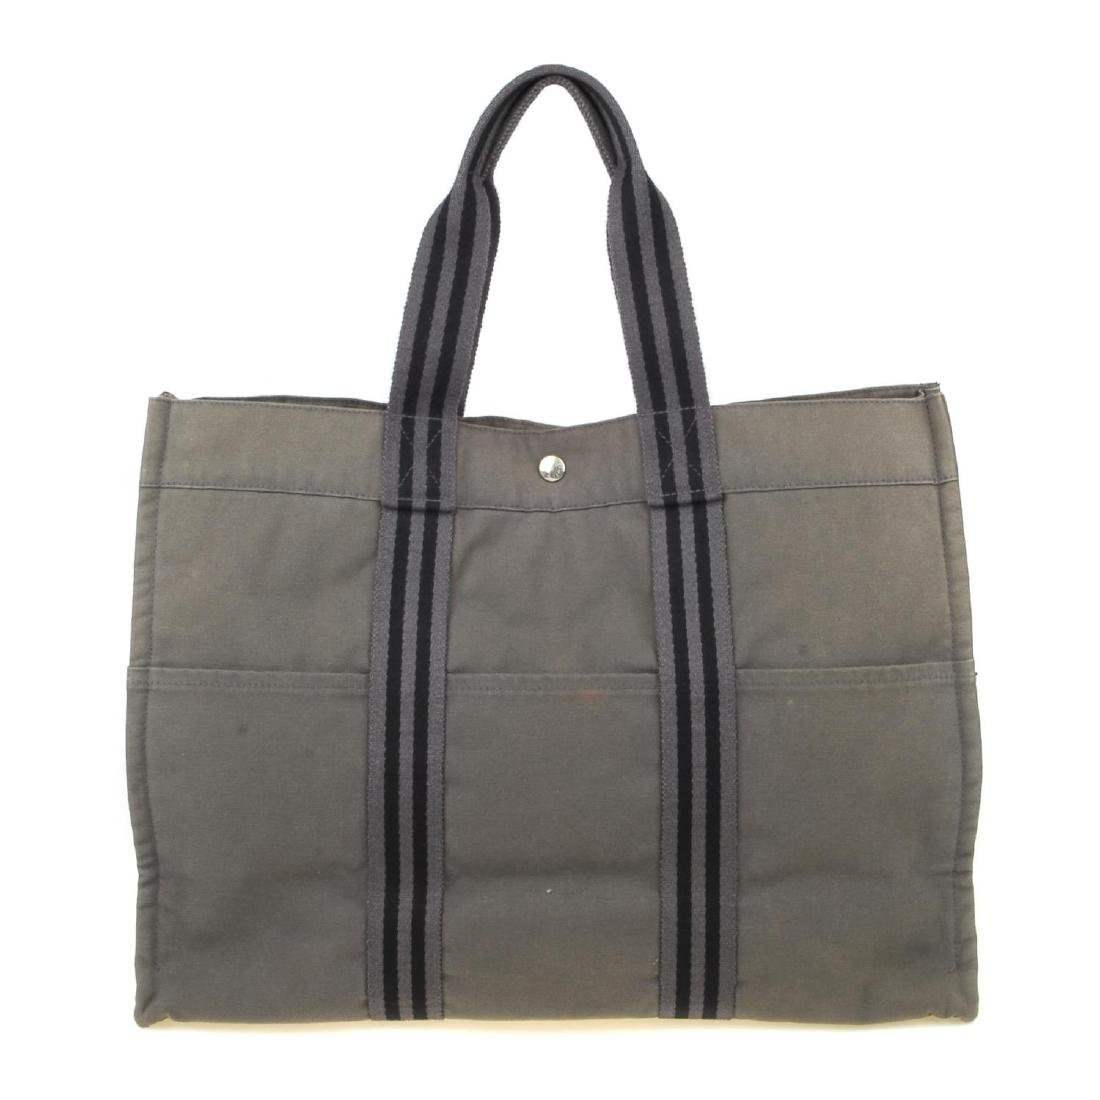 HERMÈS - a Fourre Tout canvas GM handbag. Crafted from